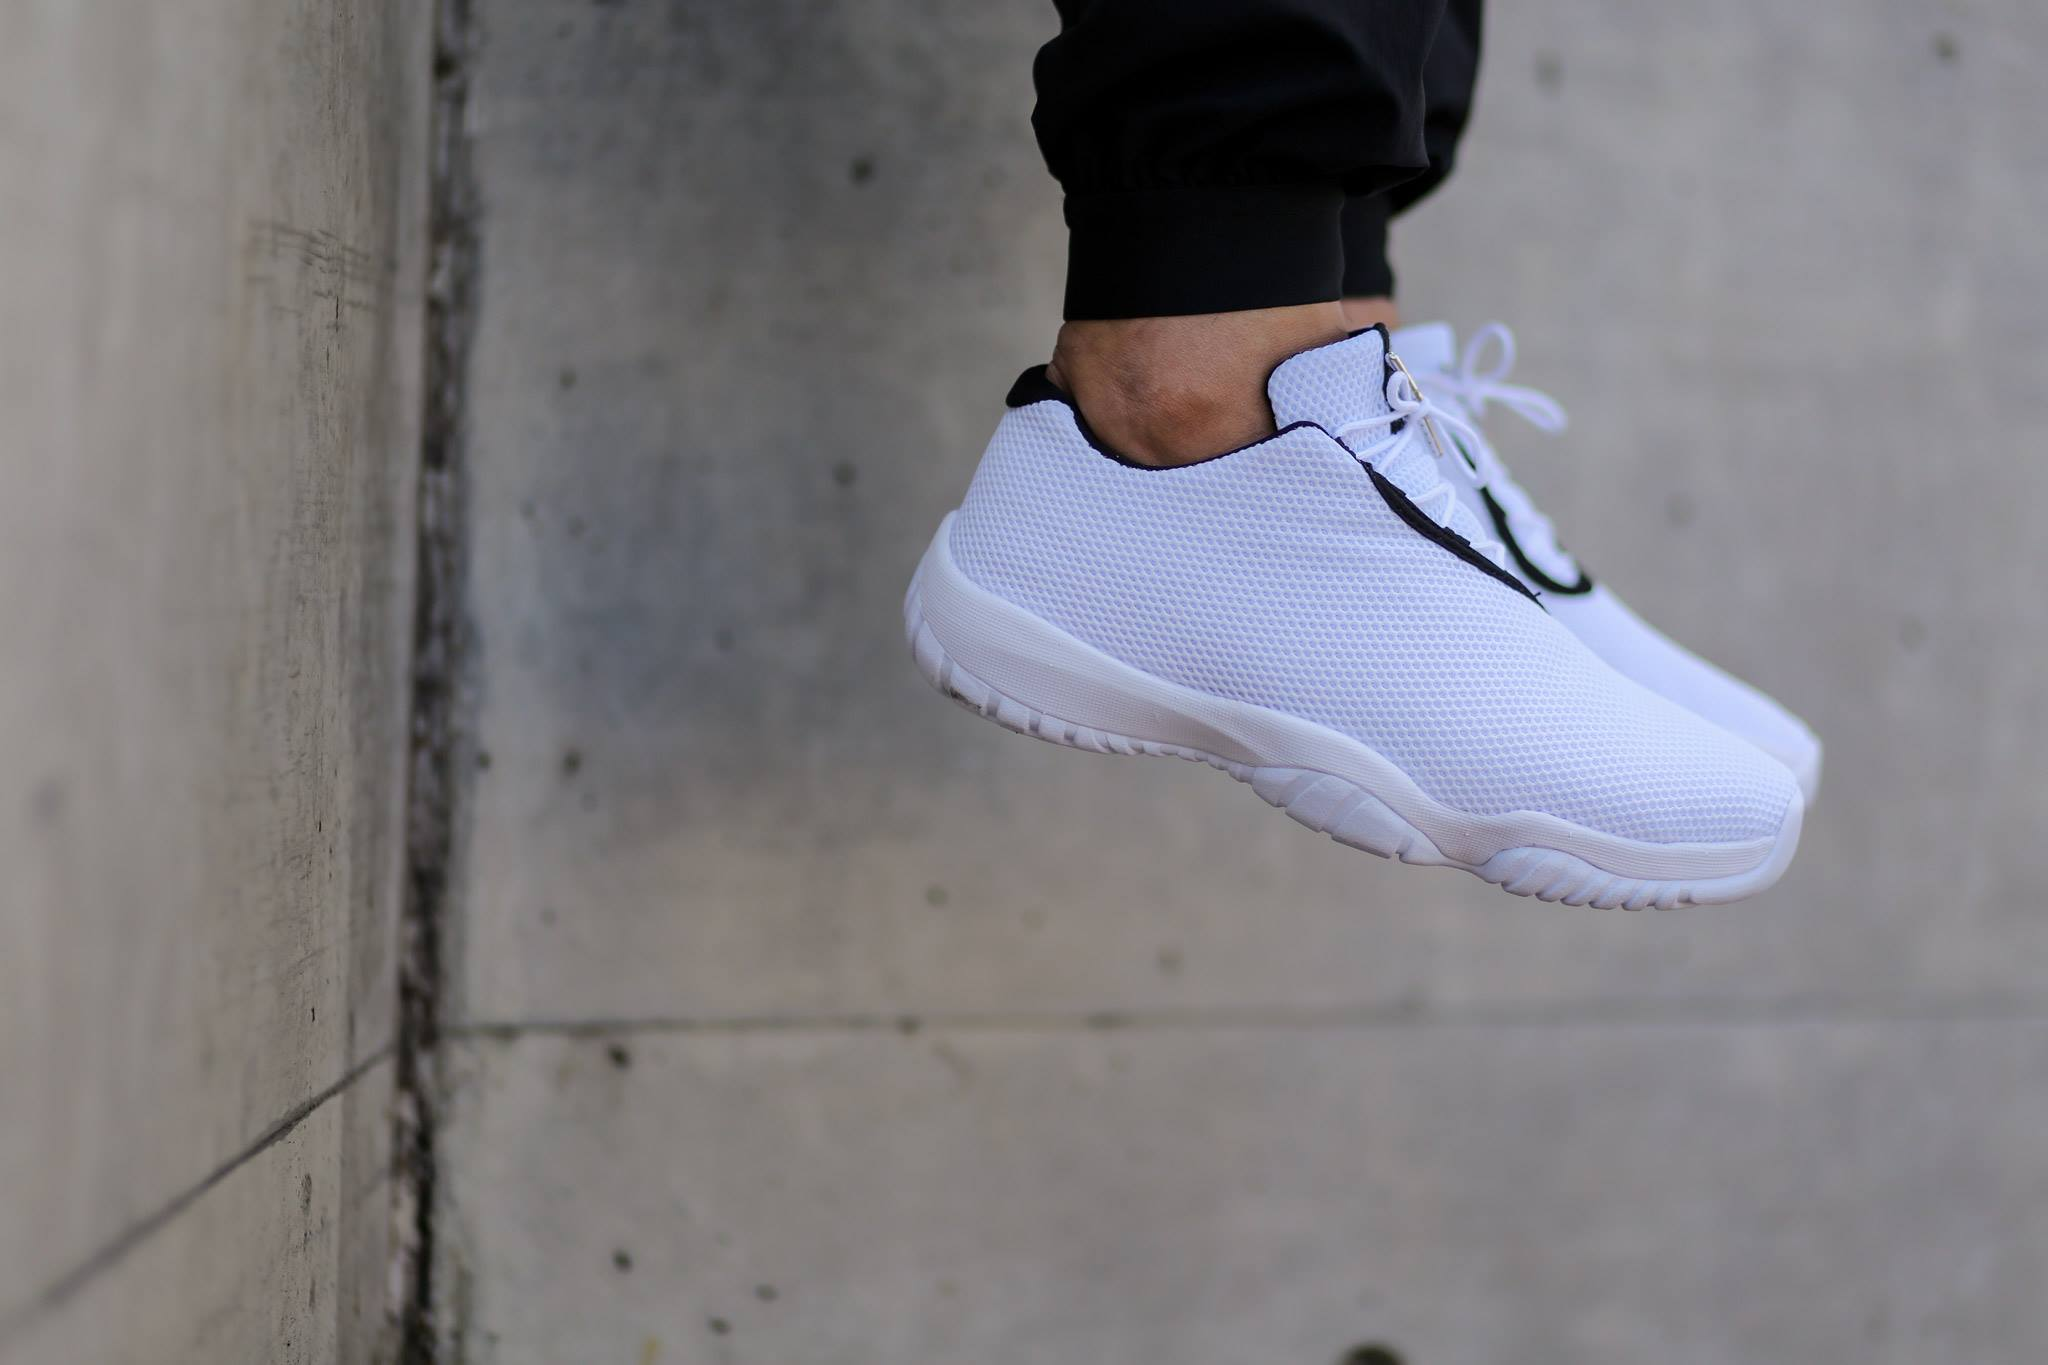 new arrival d6782 59ad6 New Red Black White Air Jordan Future Low 718948-600 Mens Size 12